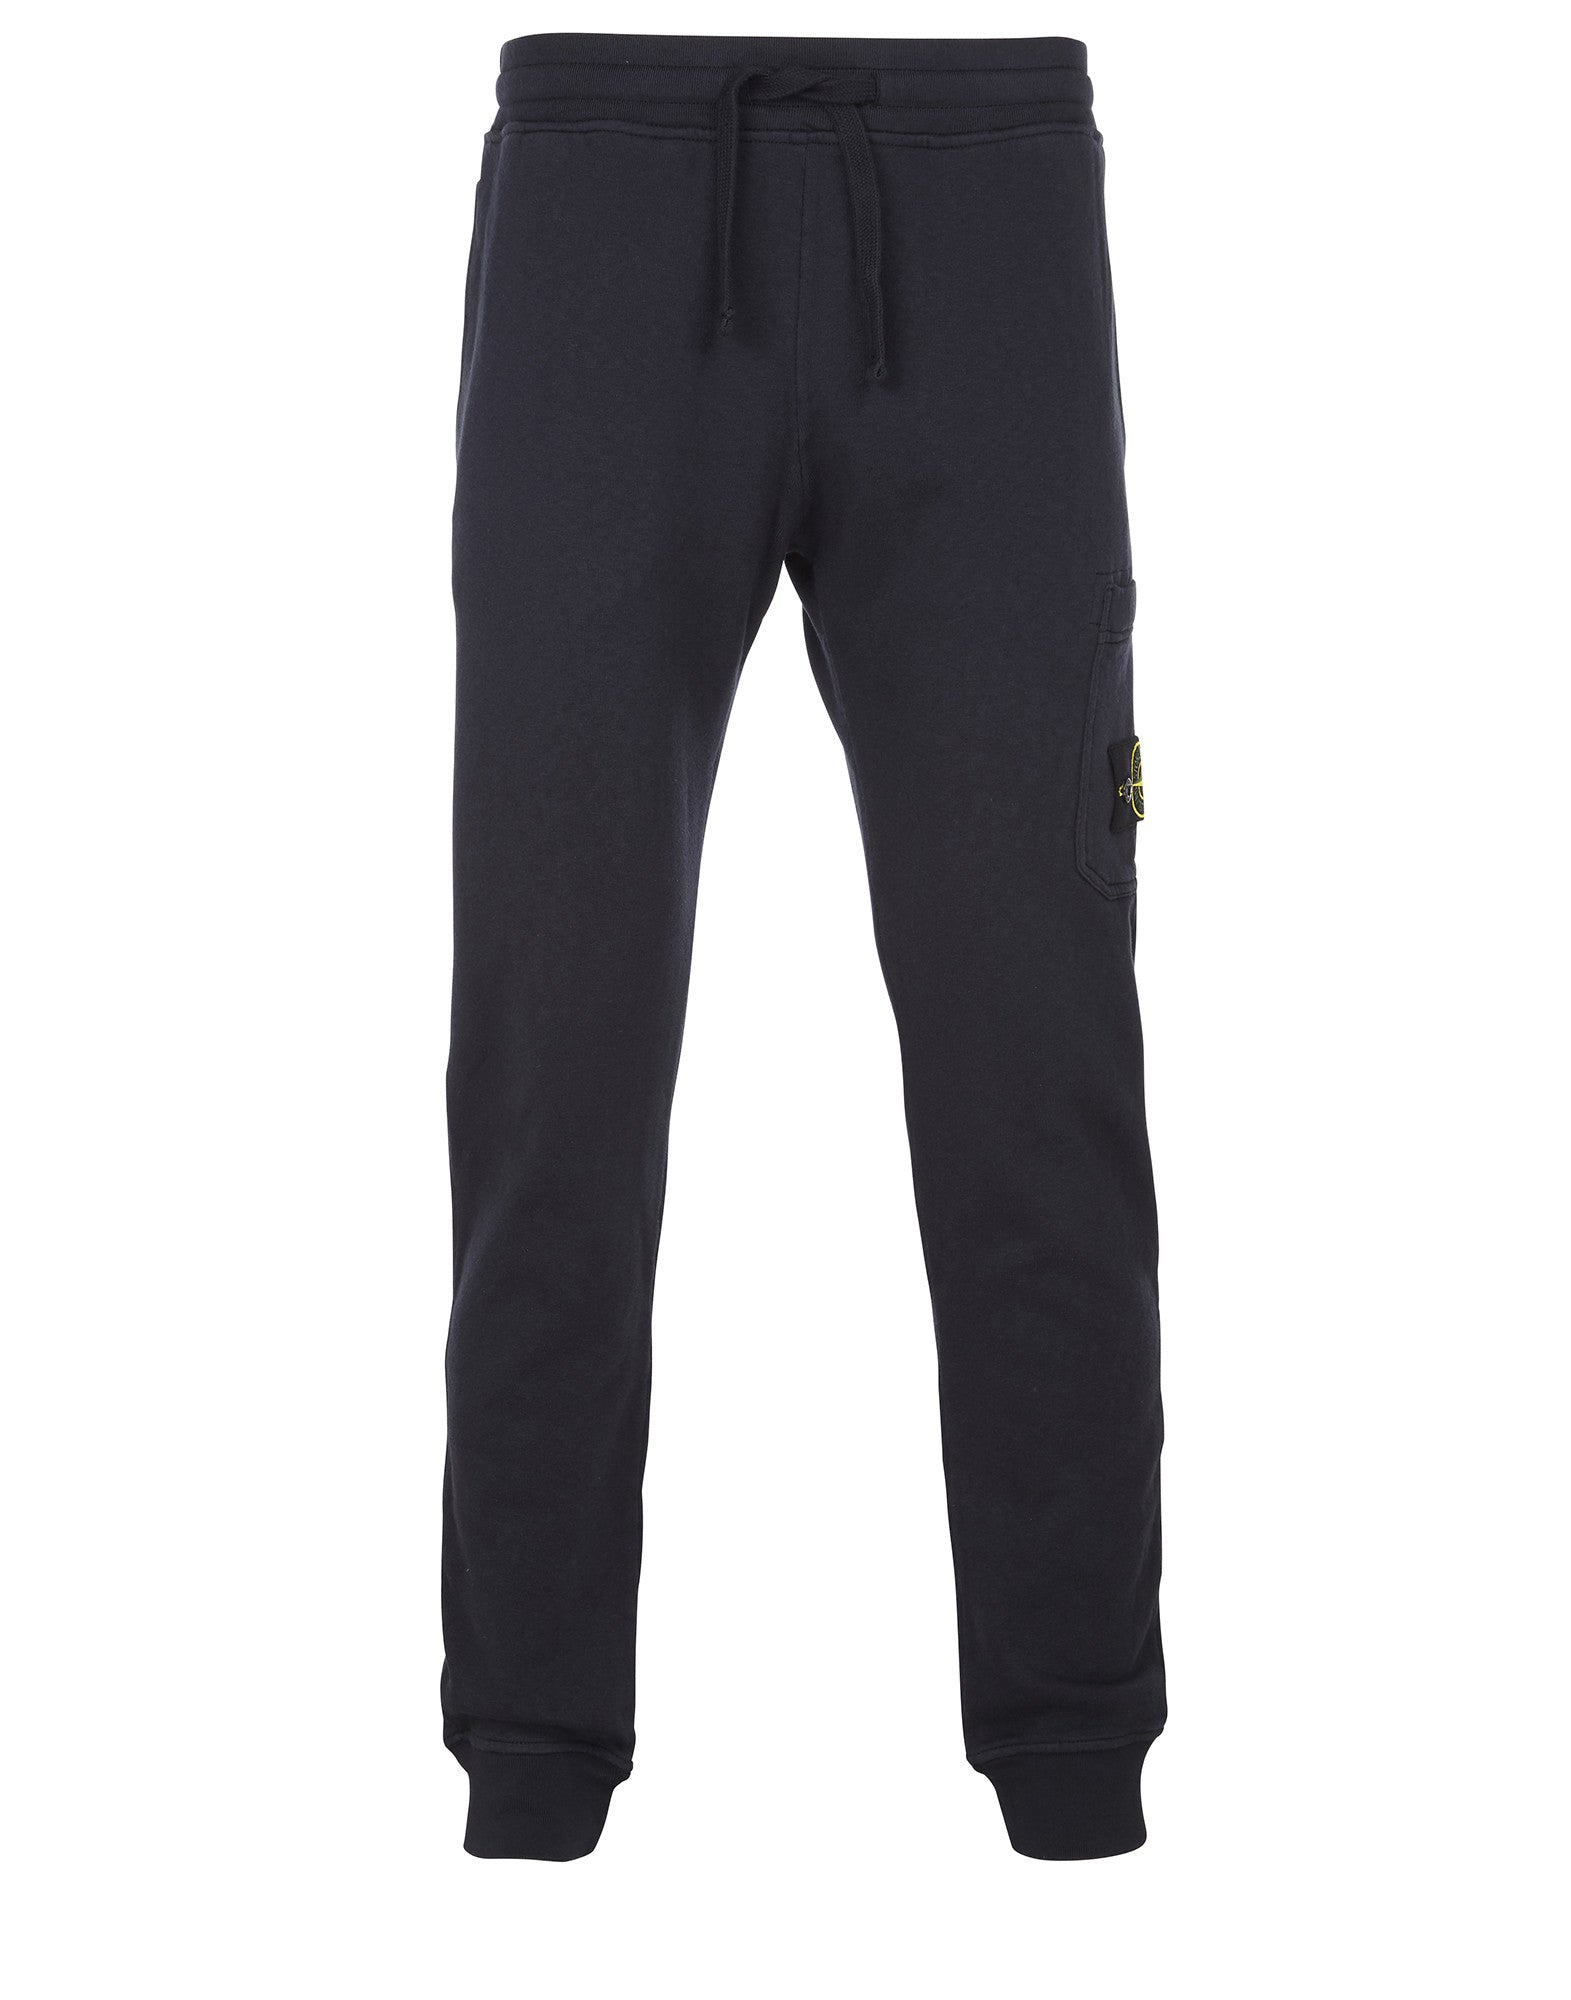 62861 T.CO+OLD Sweatpants in Navy Blue